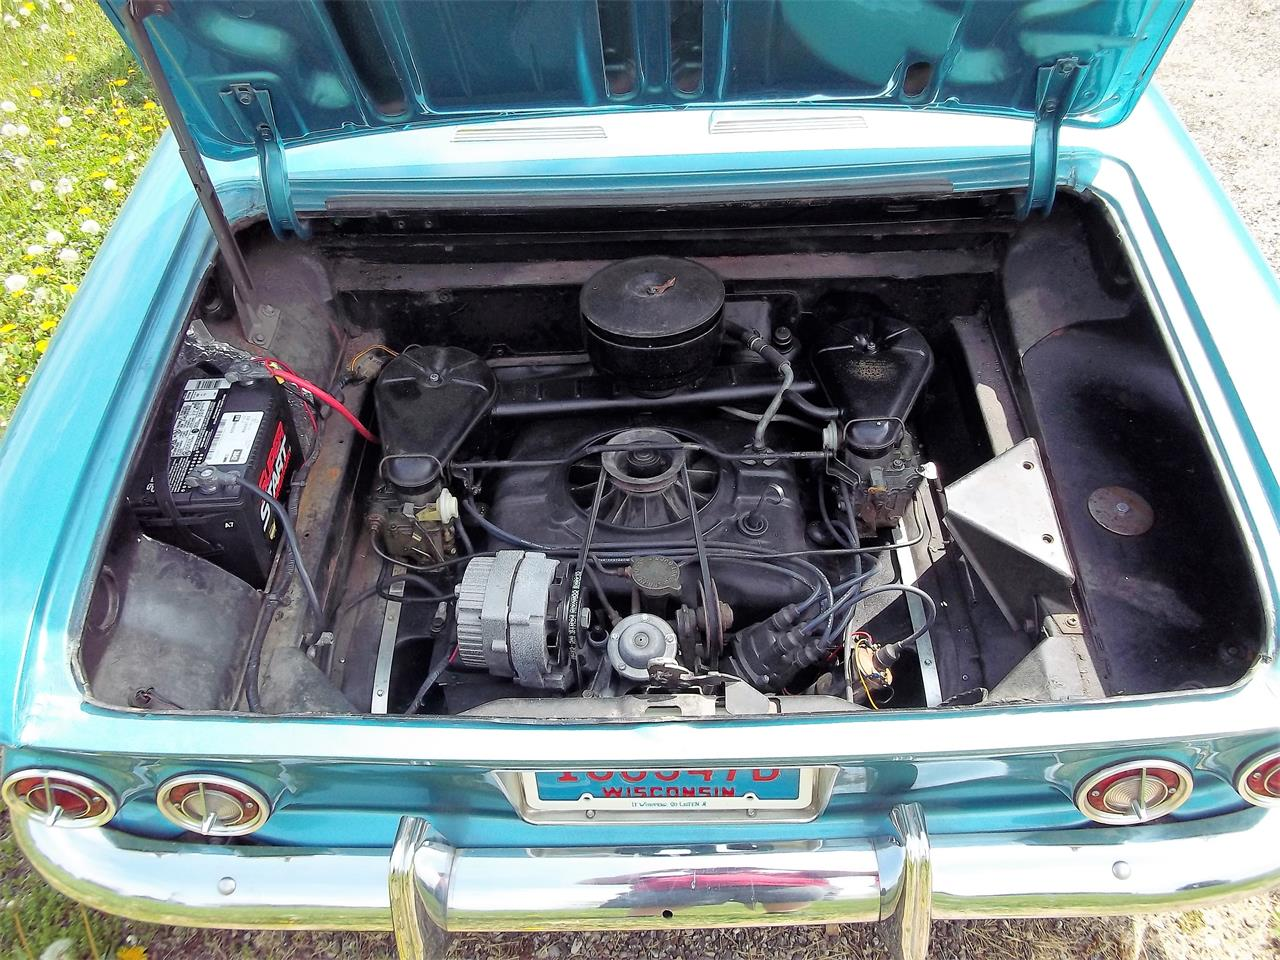 Large Picture of 1963 Corvair Monza Offered by a Private Seller - L2P4